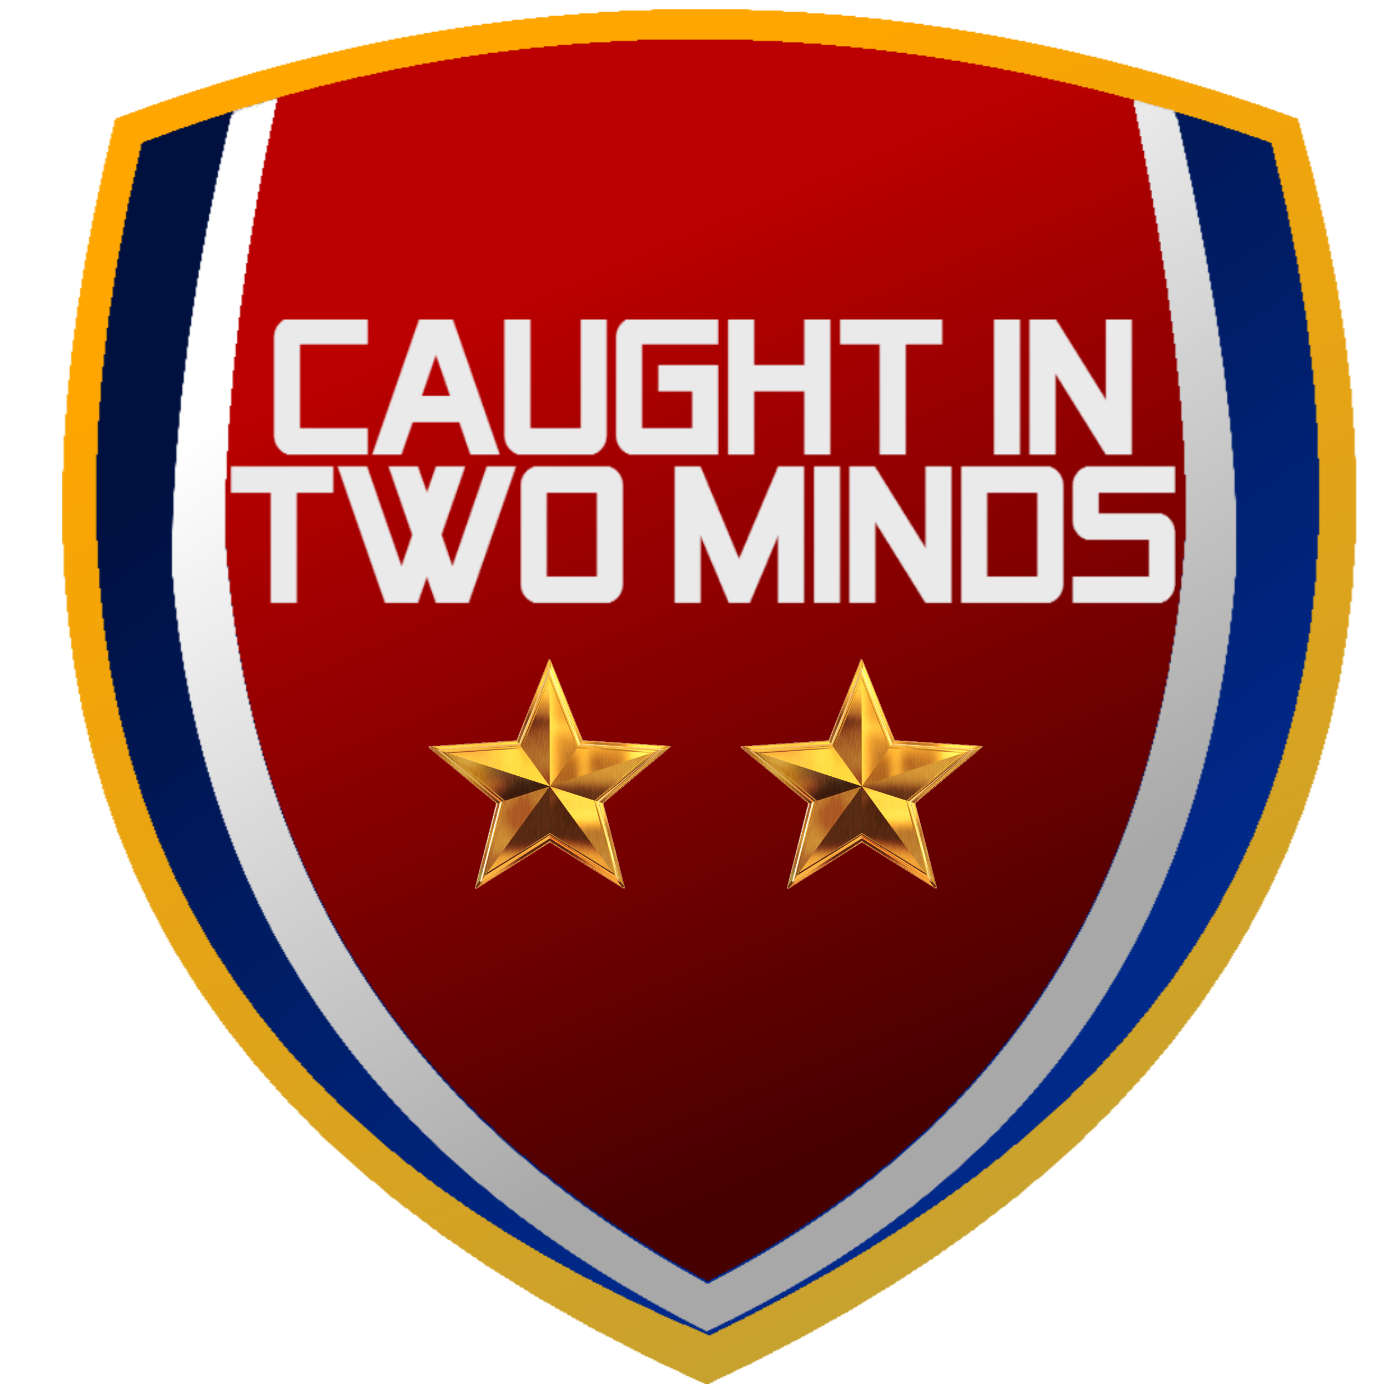 21 - Caught In Two Minds